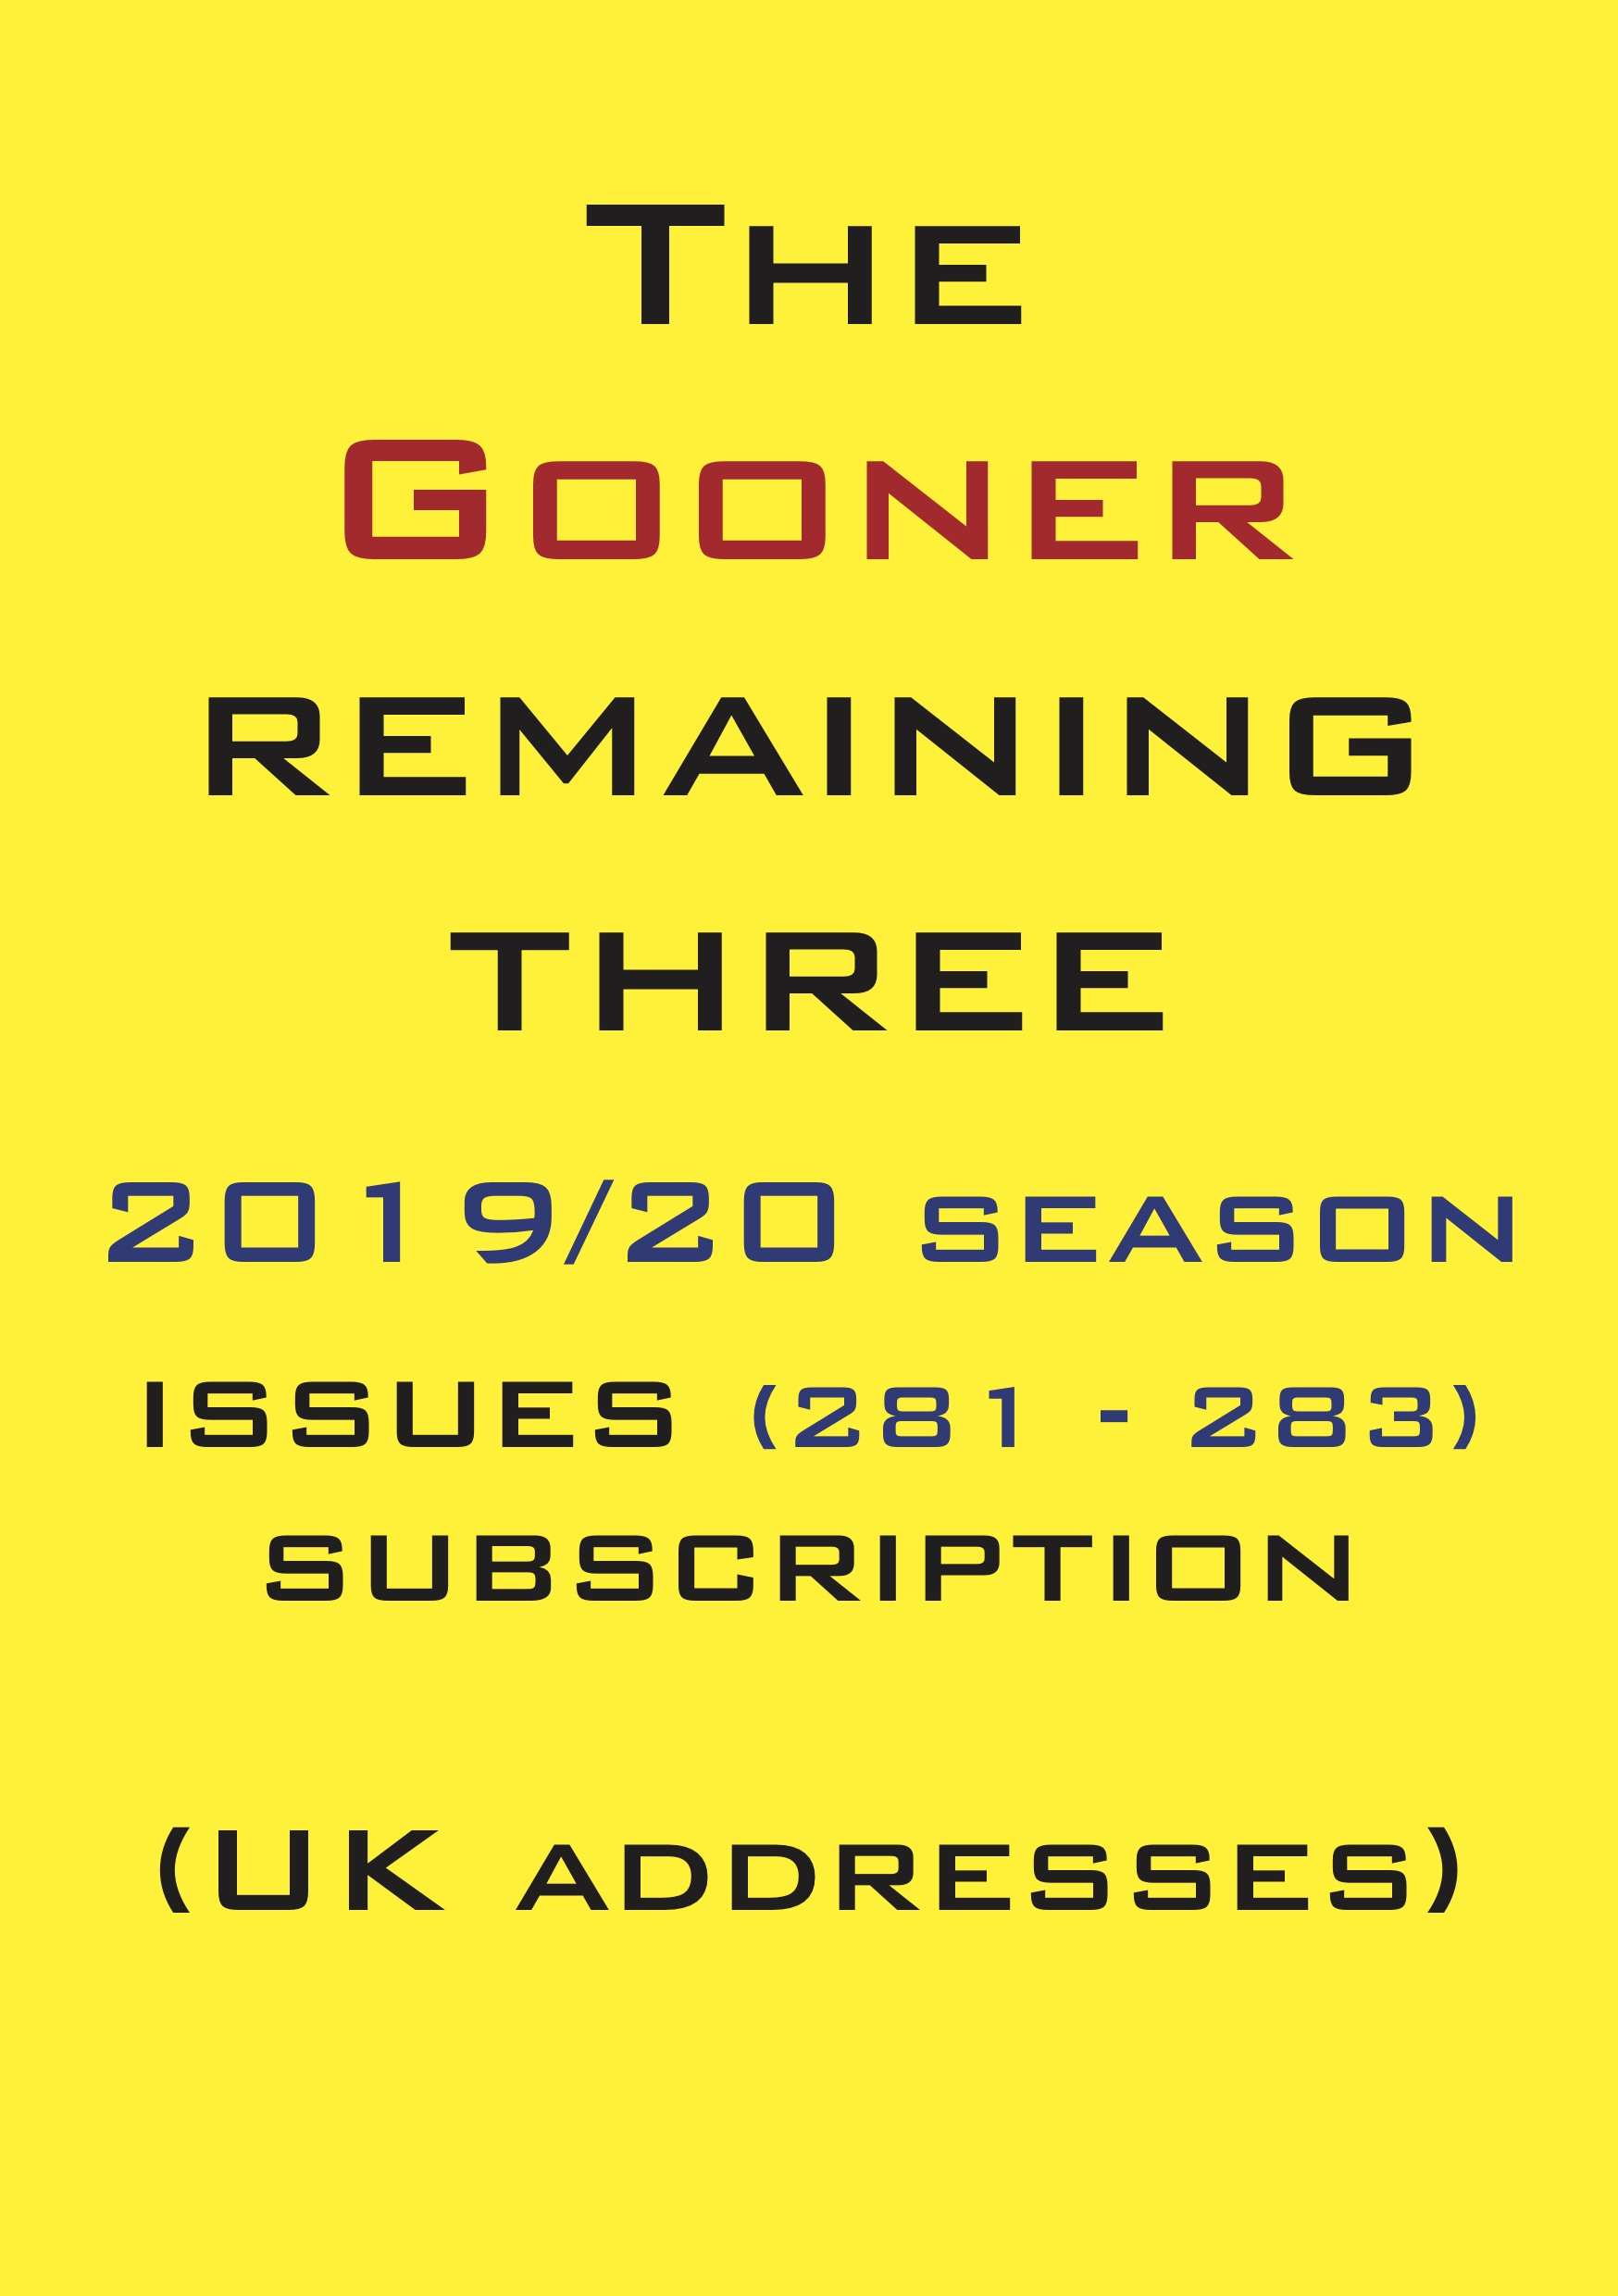 1c. The Gooner! - 3 remaining 2019/20 issues subscription UK